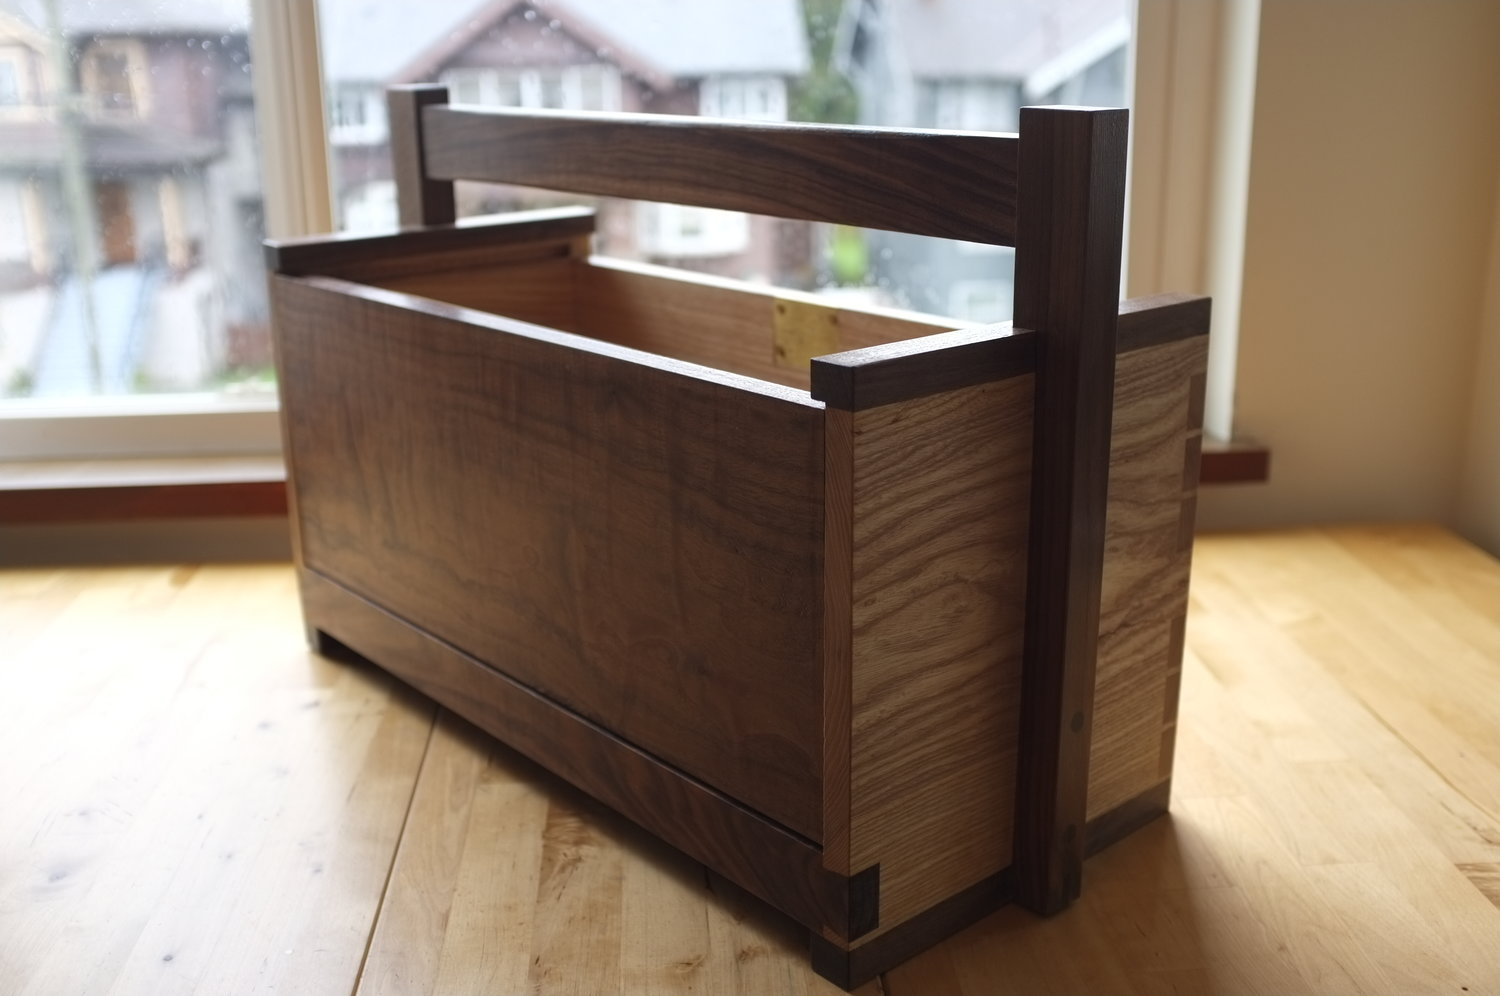 Beautiful Made By Hand Furniture S From The Unplugged Wood